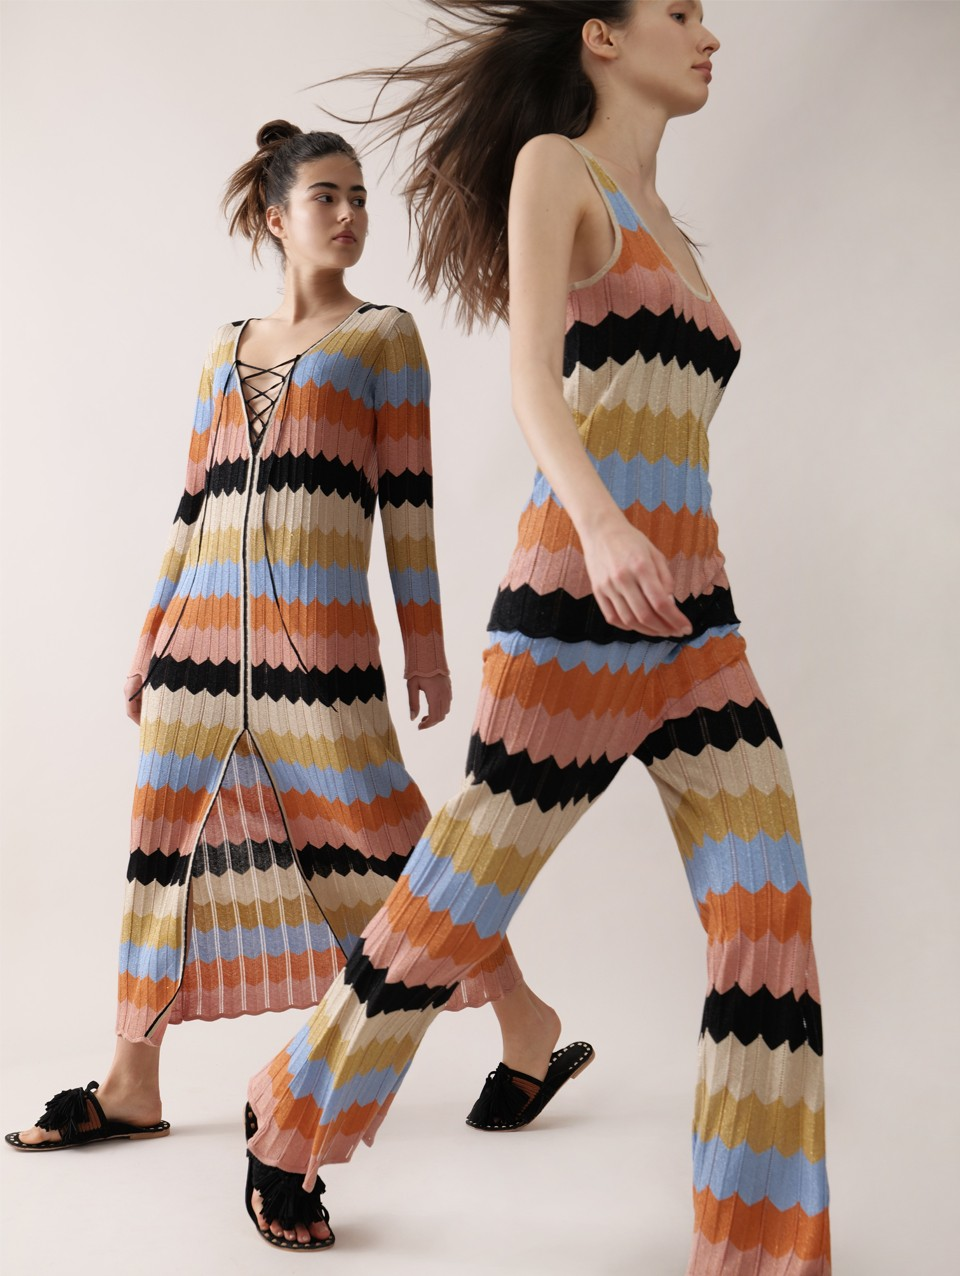 Ati Zig Zag Striped Knit Dress